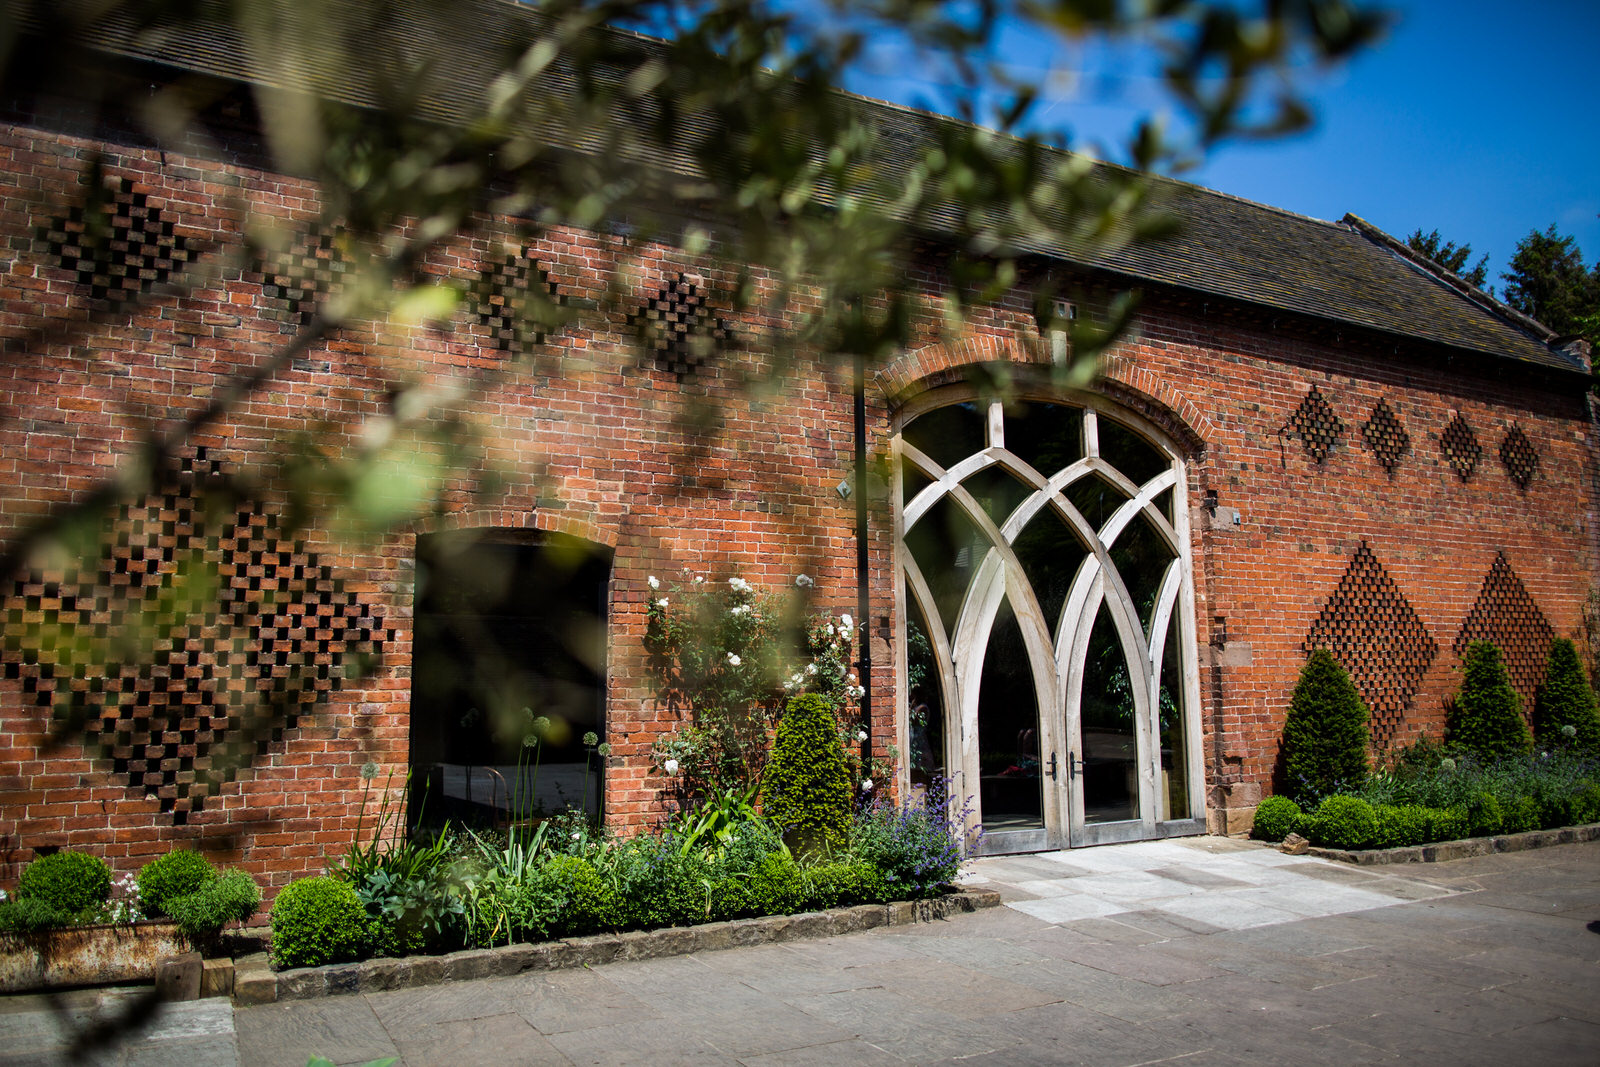 Victoria&KieranWedding-1156 Johnny Dentshustoke+barn+warwickshire+wedding+venue_1.jpg